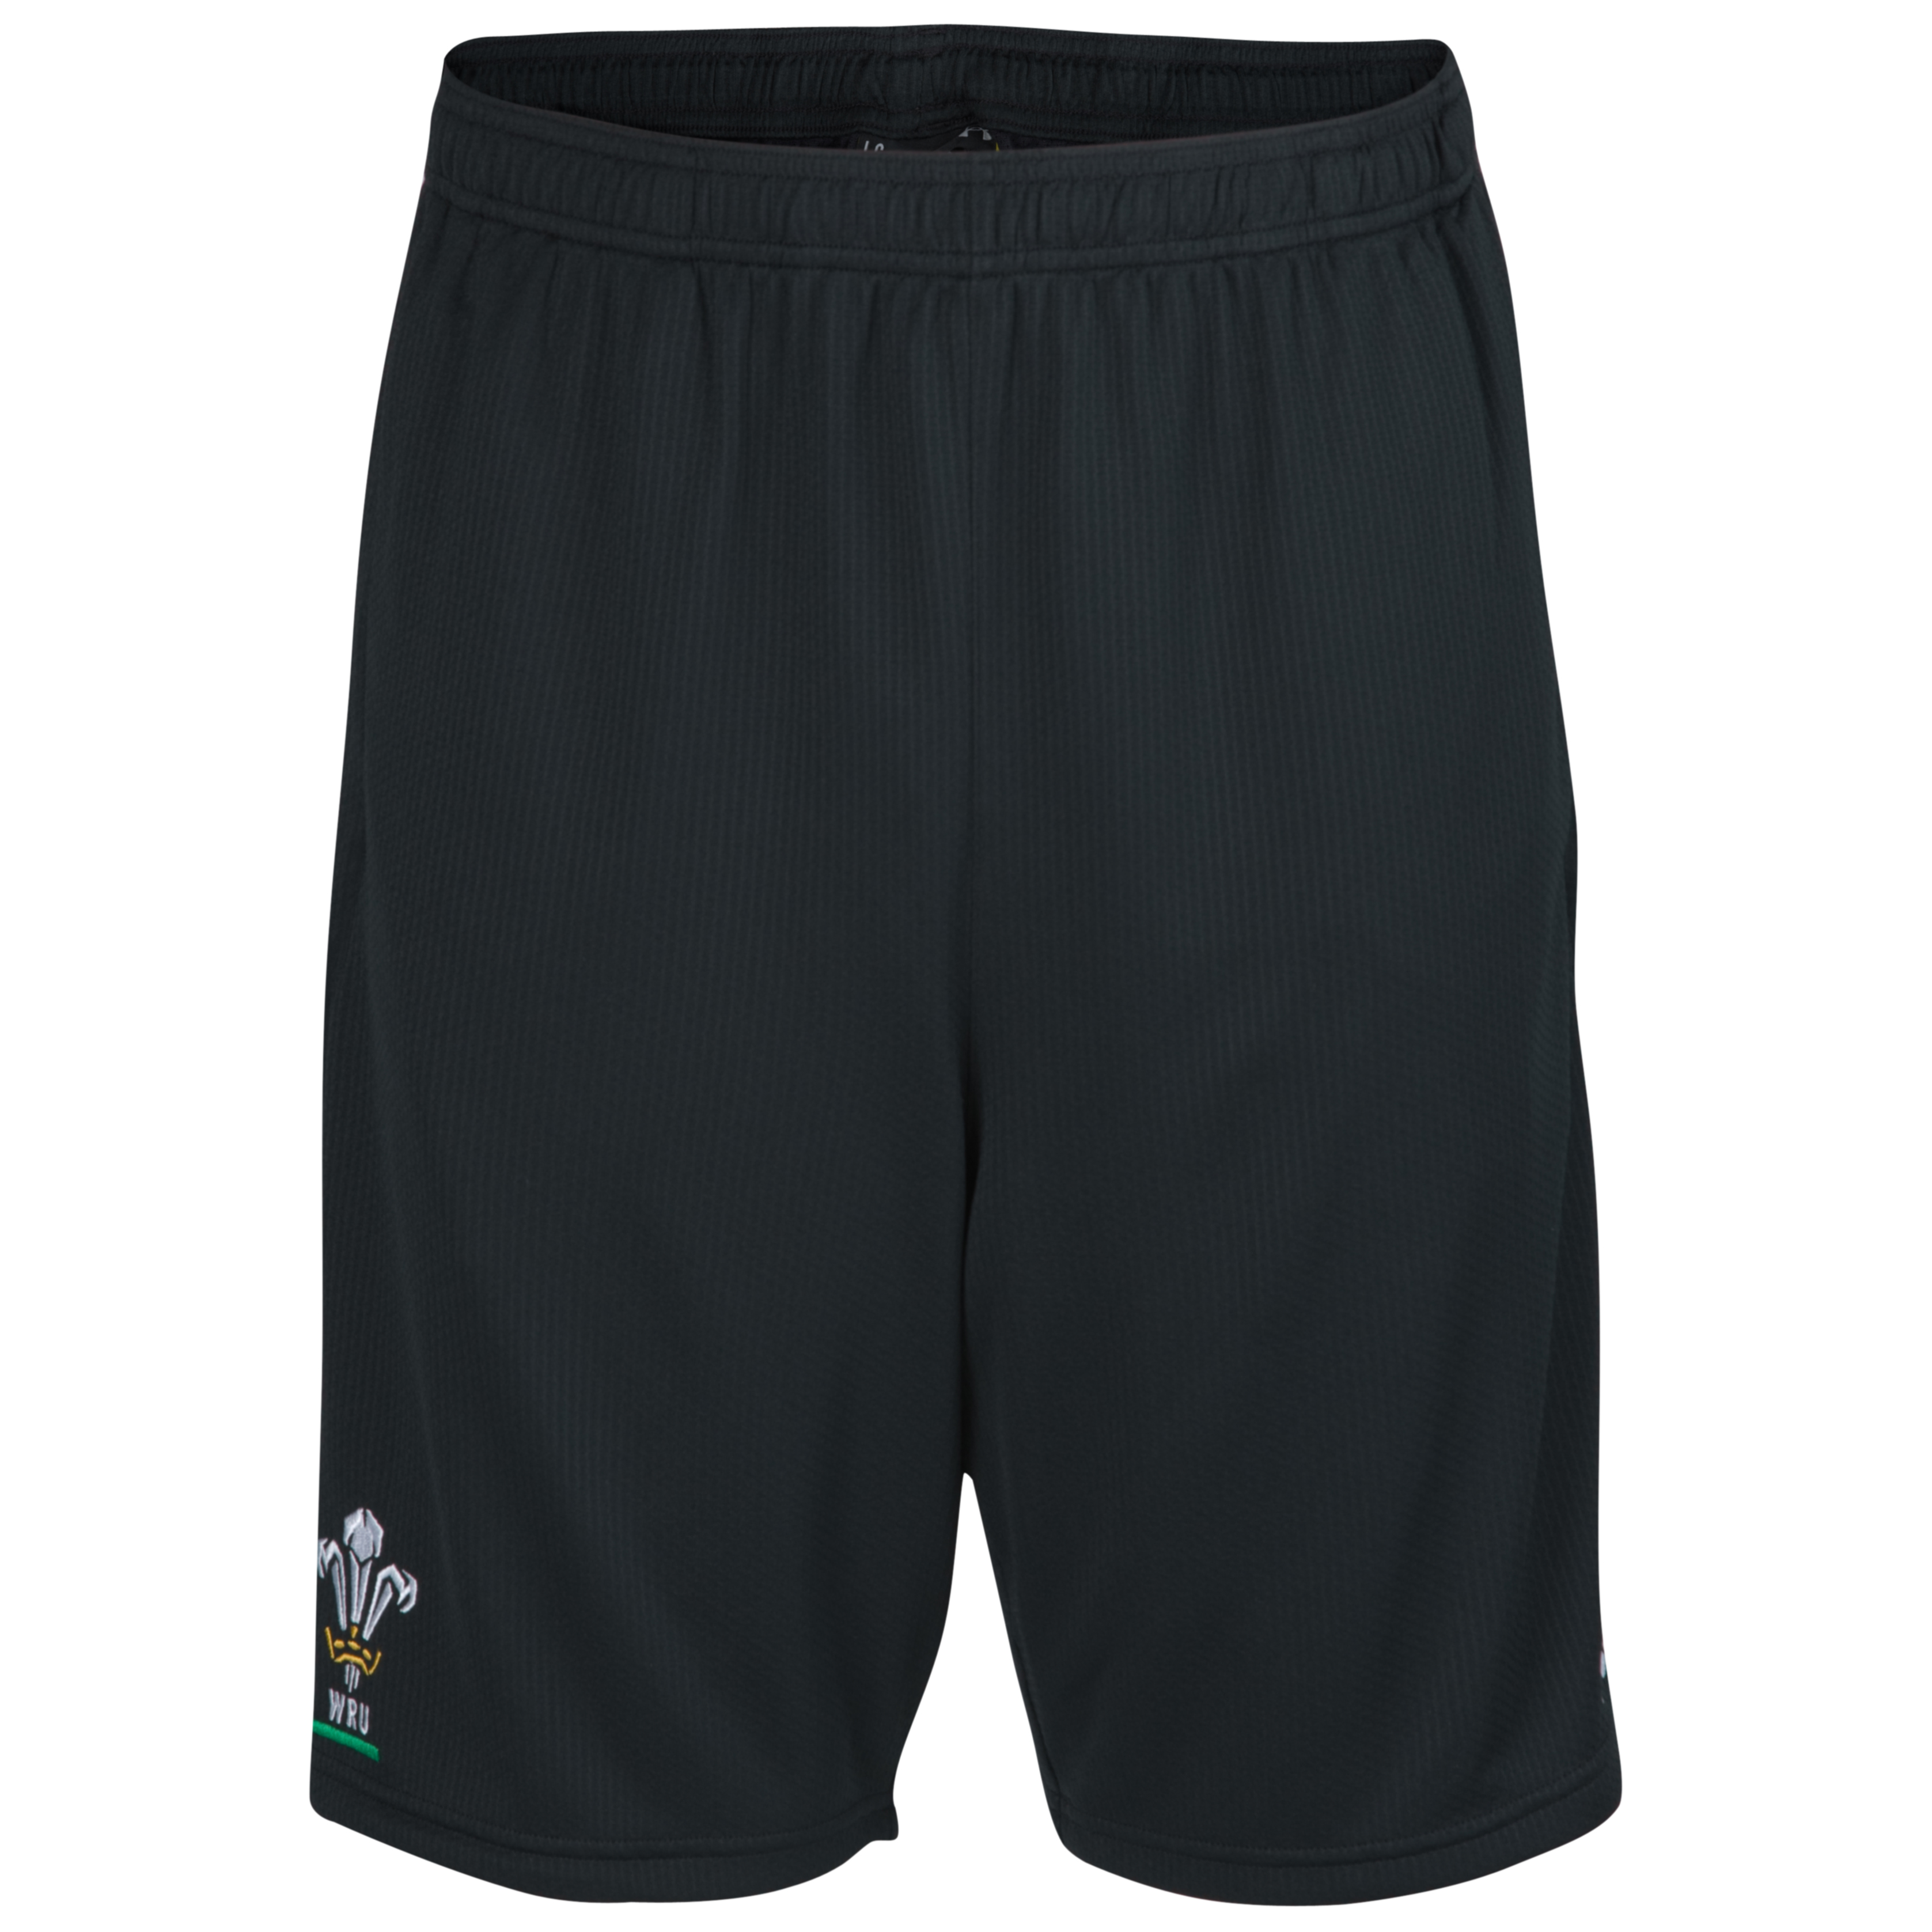 Wales Rugby Union 10k Force Short - Black/Red